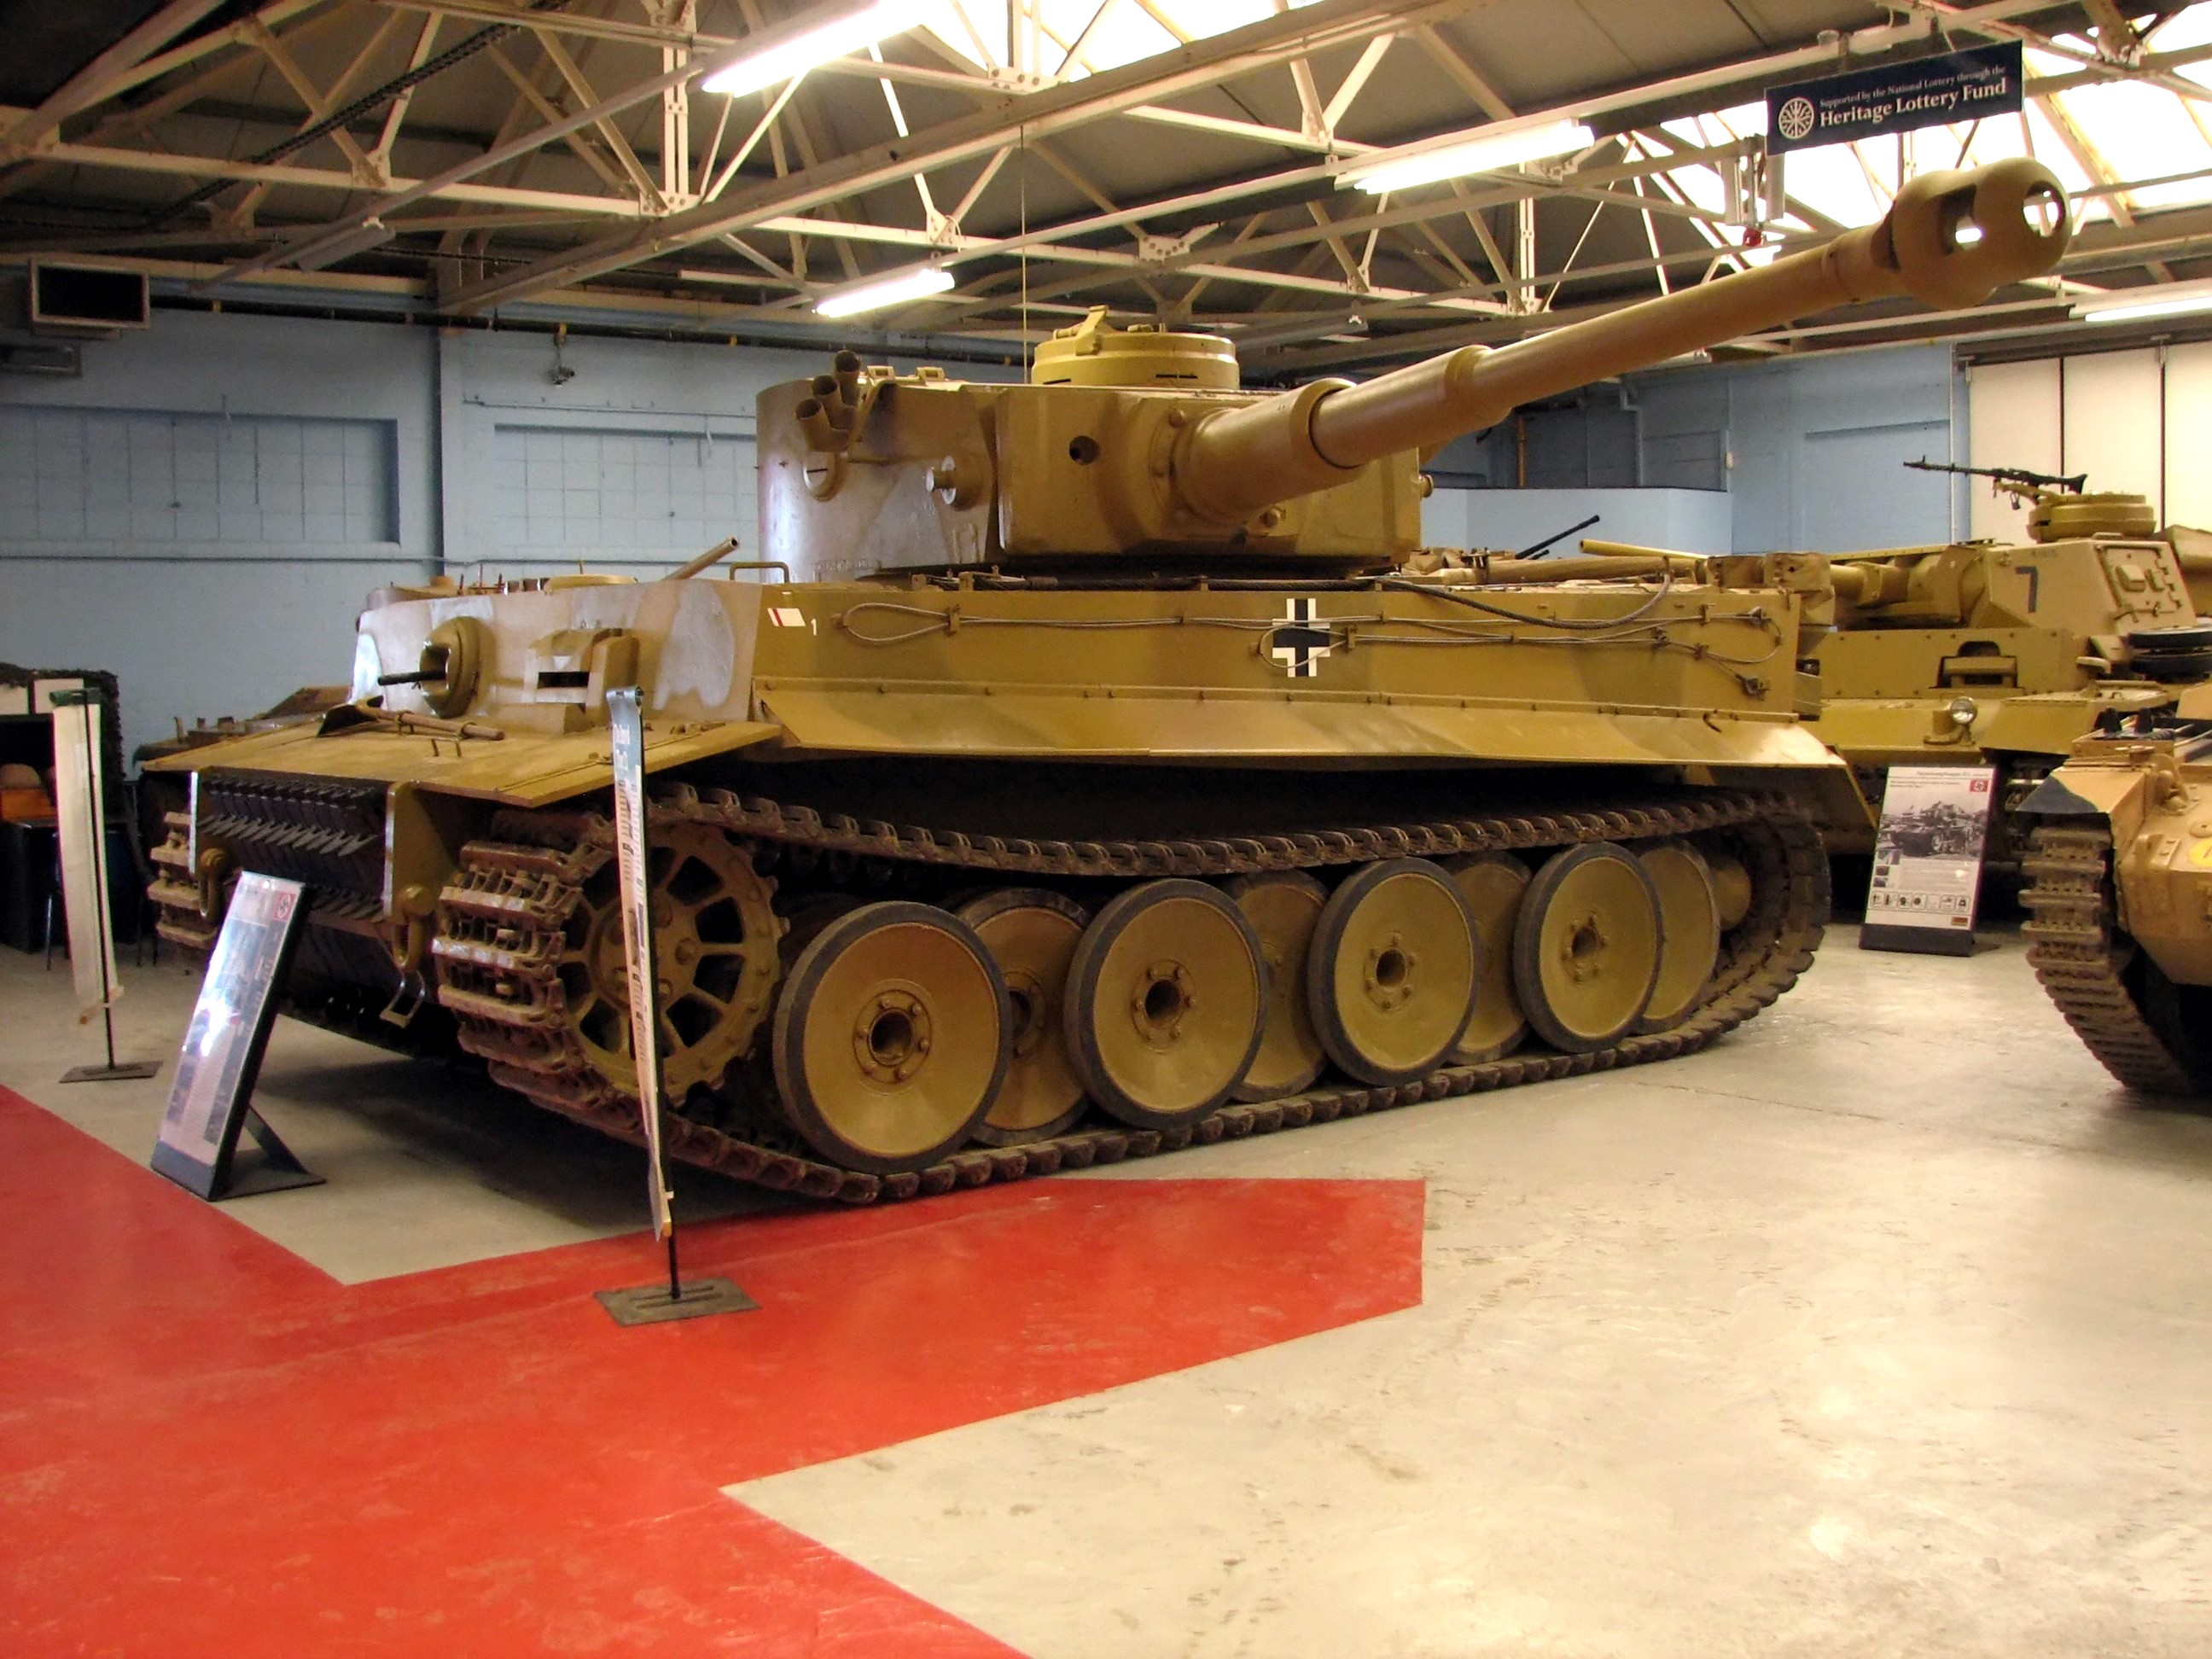 The Tiger at Bovington